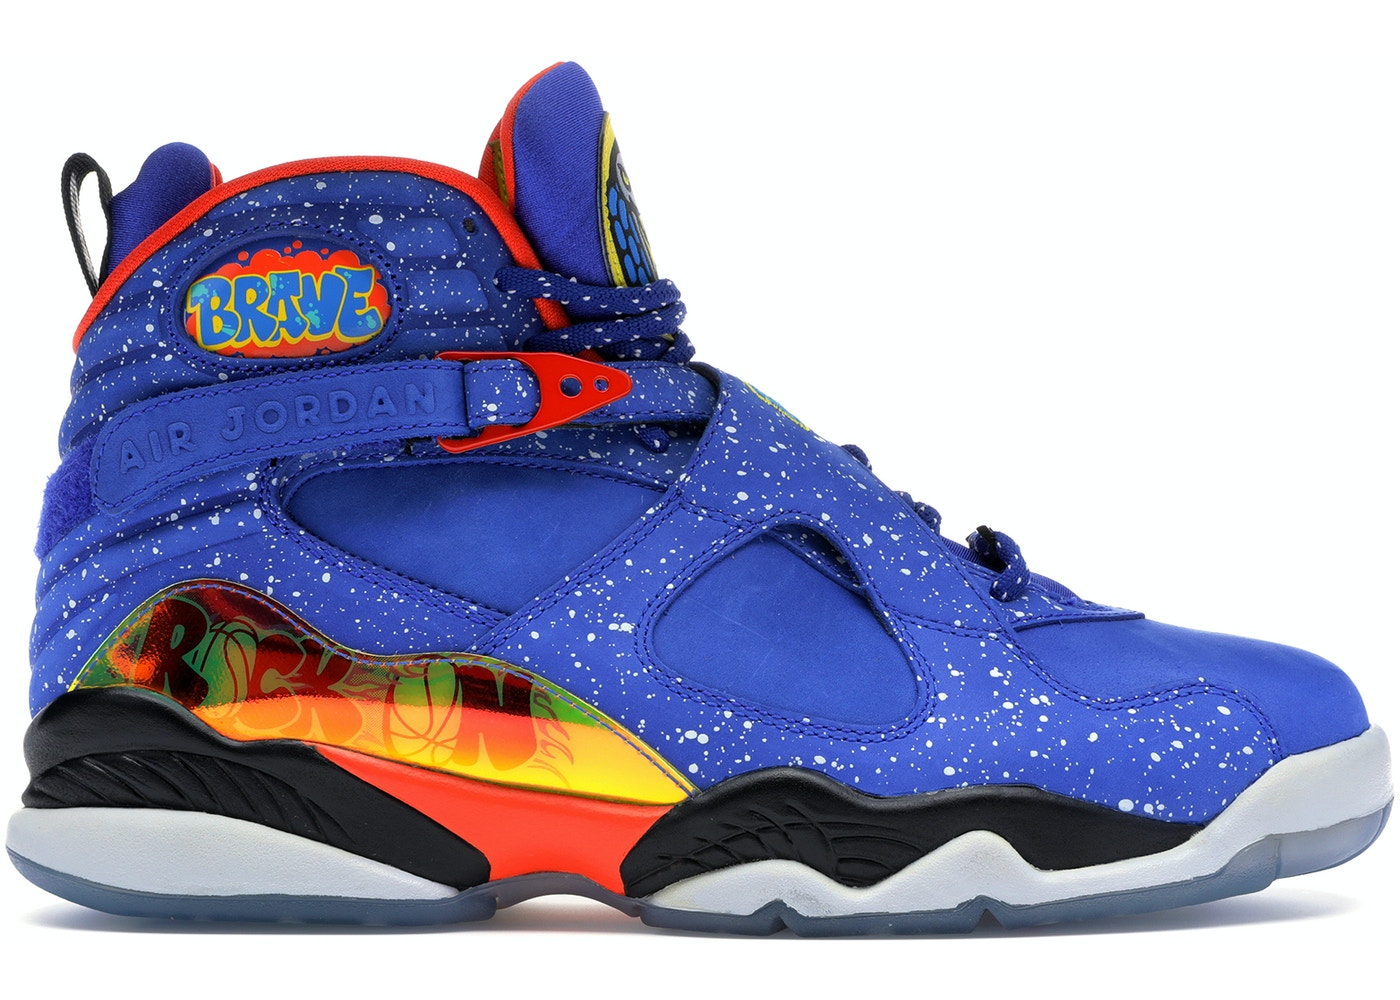 wholesale dealer 7a453 a1dfc Jordan 8 Retro Doernbecher